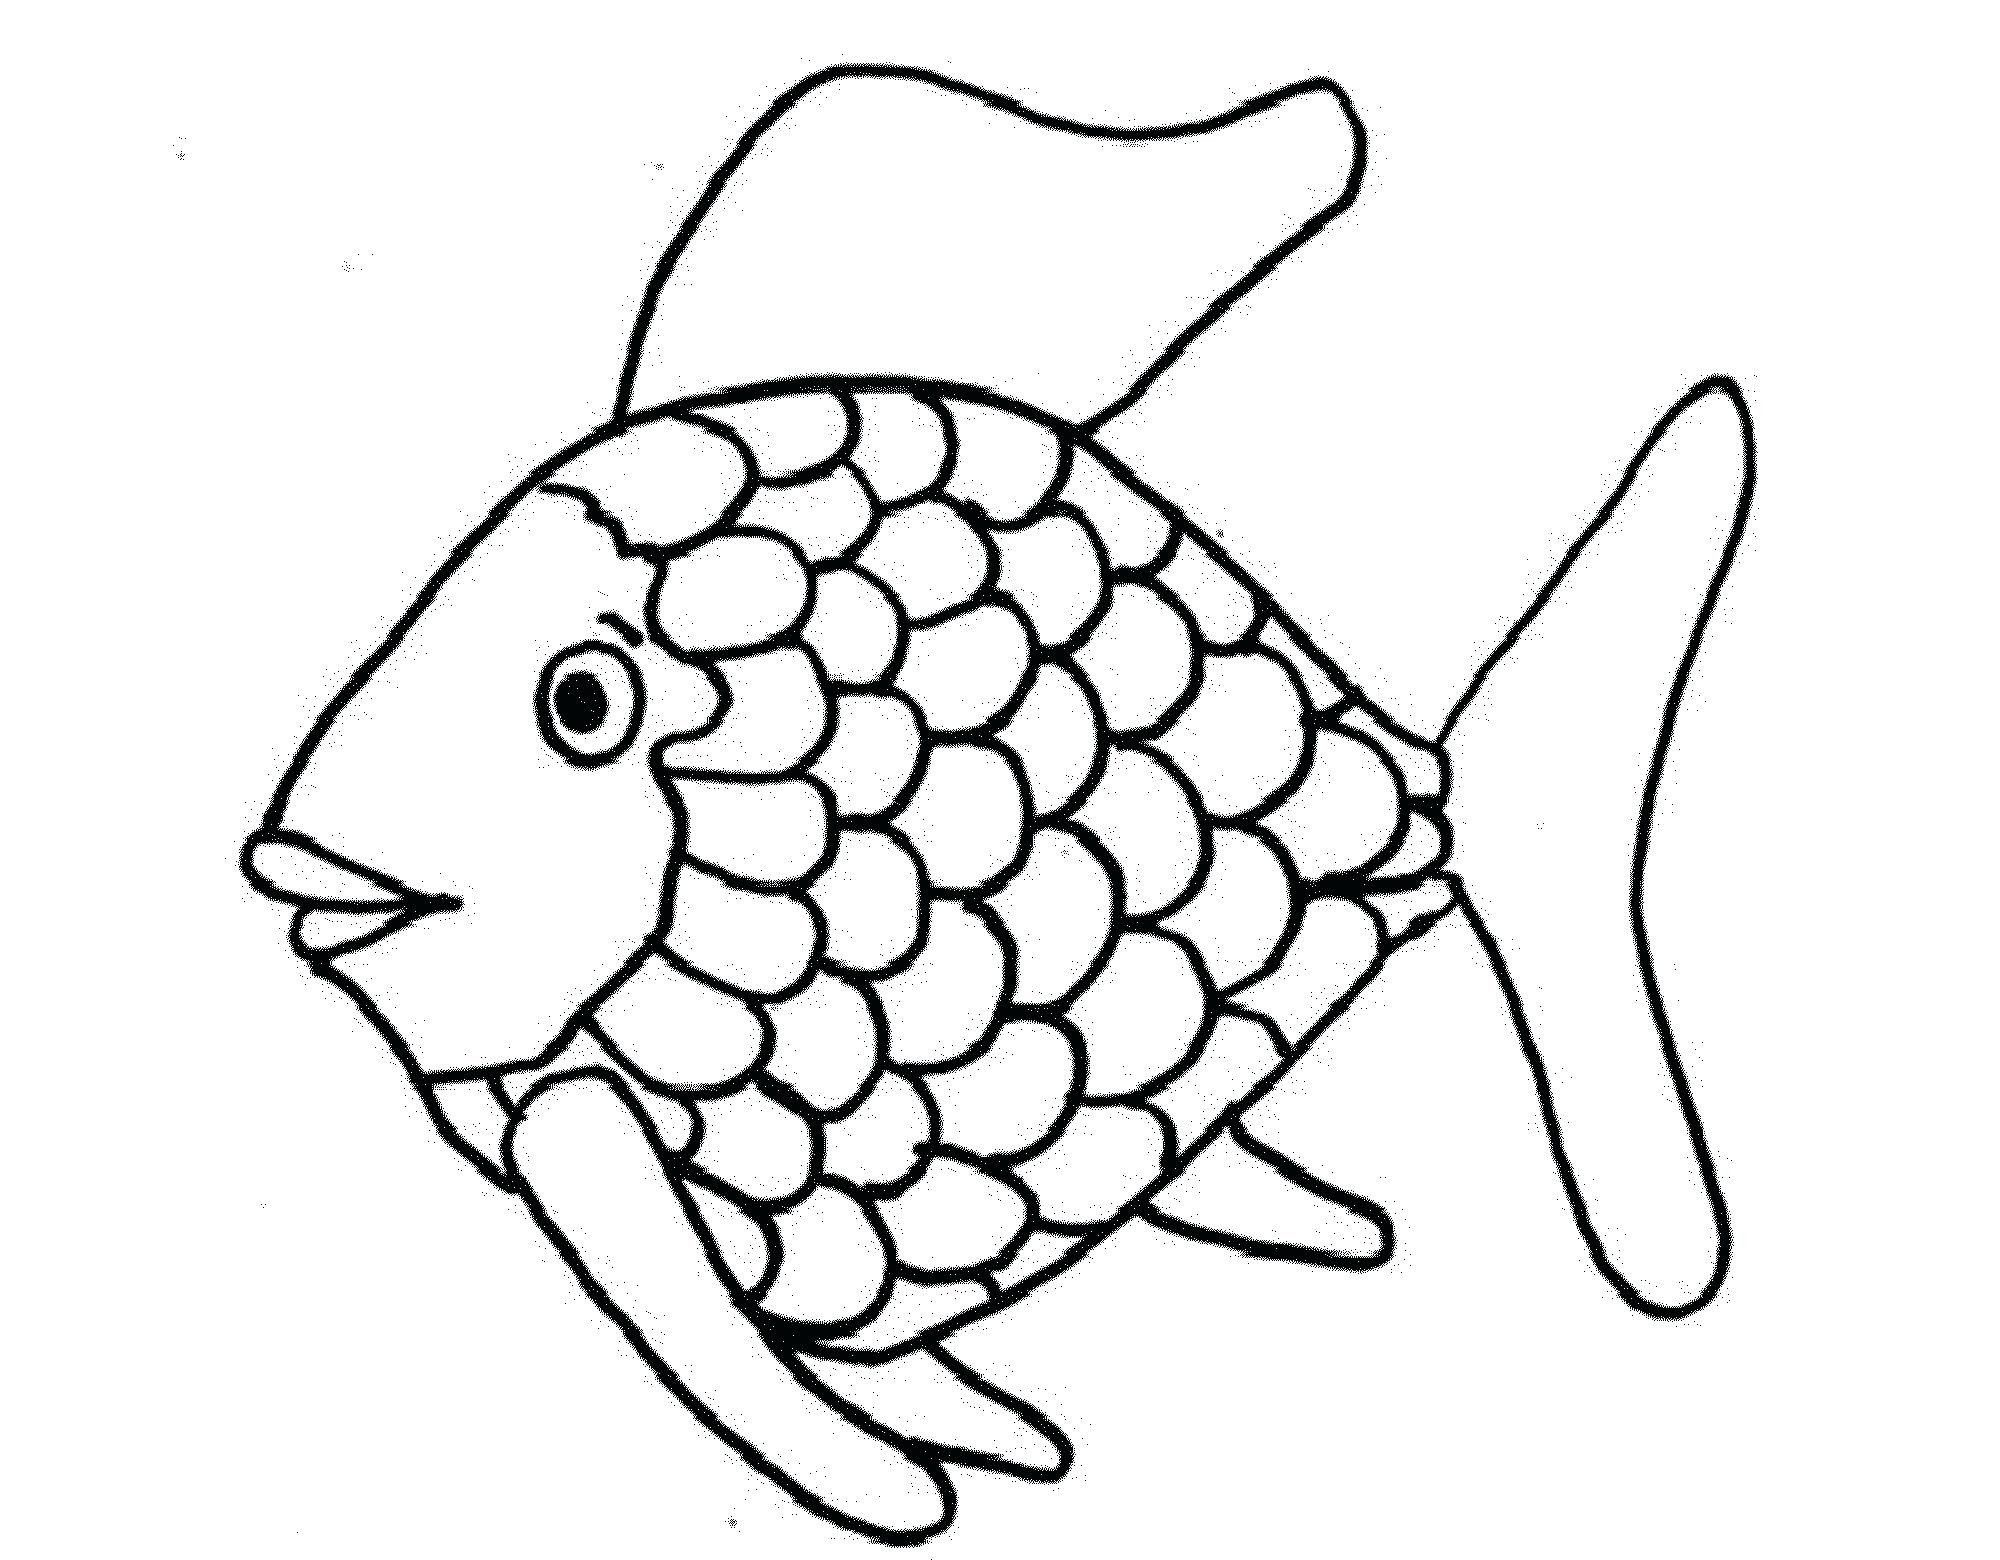 Rainbow Fish Coloring Page Beautiful Inspiring Crawfish Coloring Page Fiestaprint Rainbow Fish Coloring Page Fish Coloring Page Printable Coloring Pages